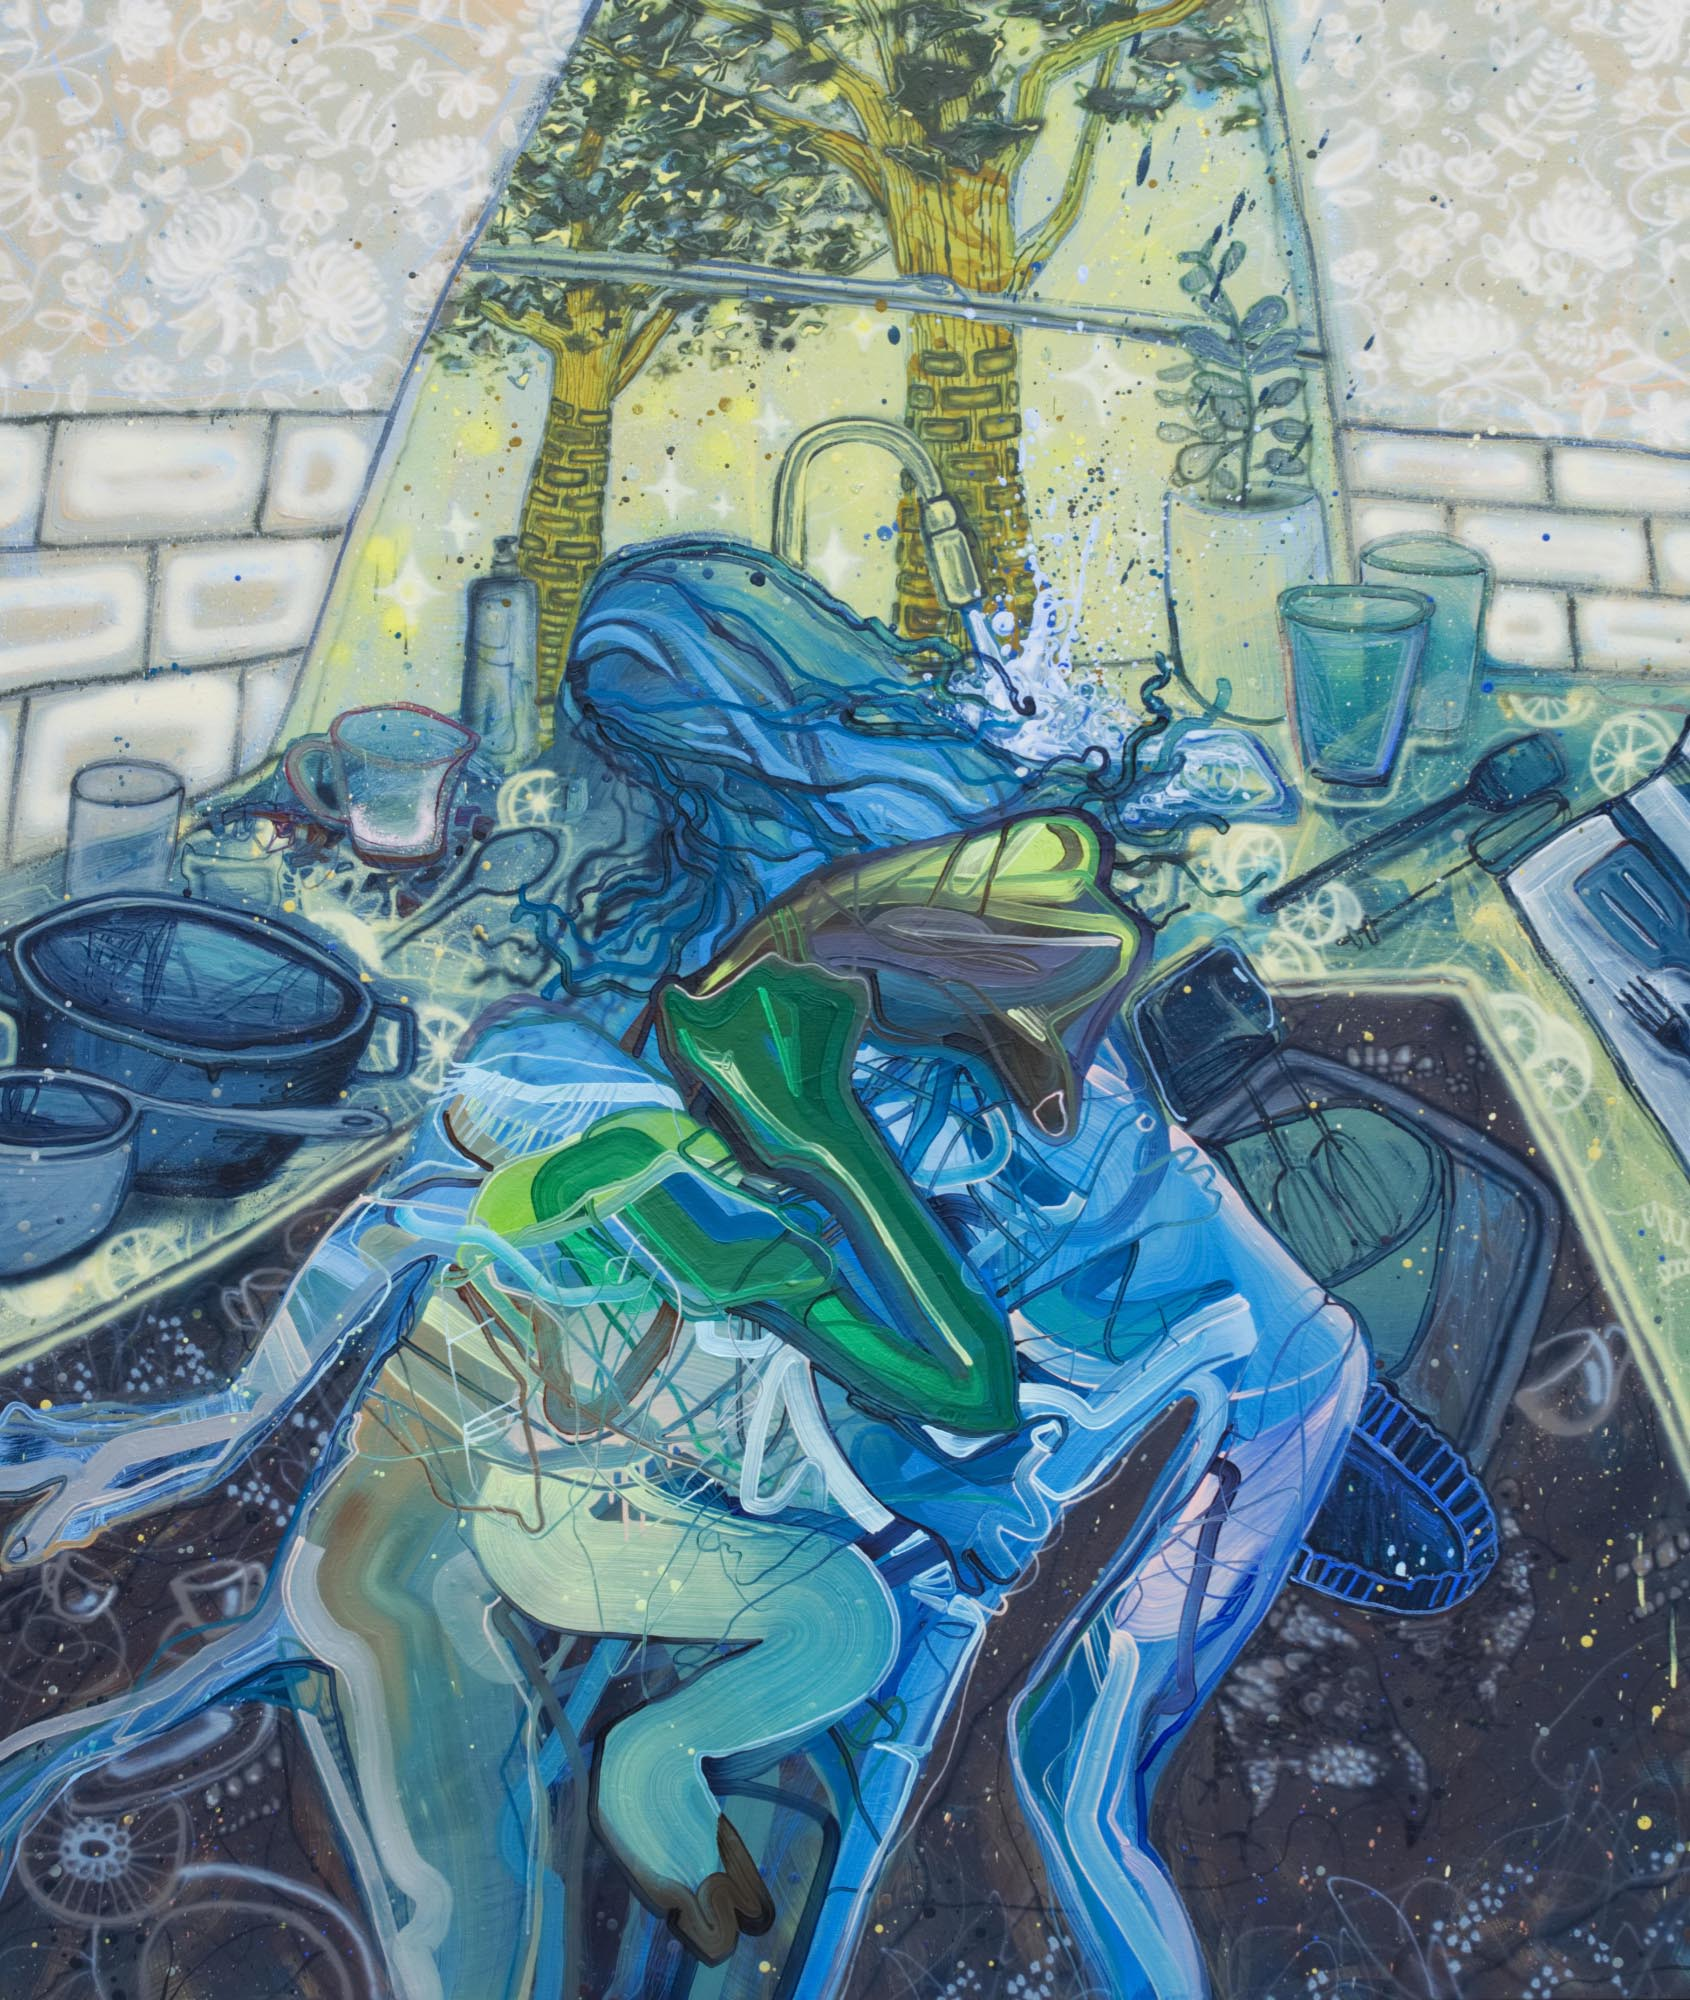 Dana Oldfather, The Dishwasher, oil, acrylic, airbrush, spray paint on linen, 72 x 60 inches, 2019